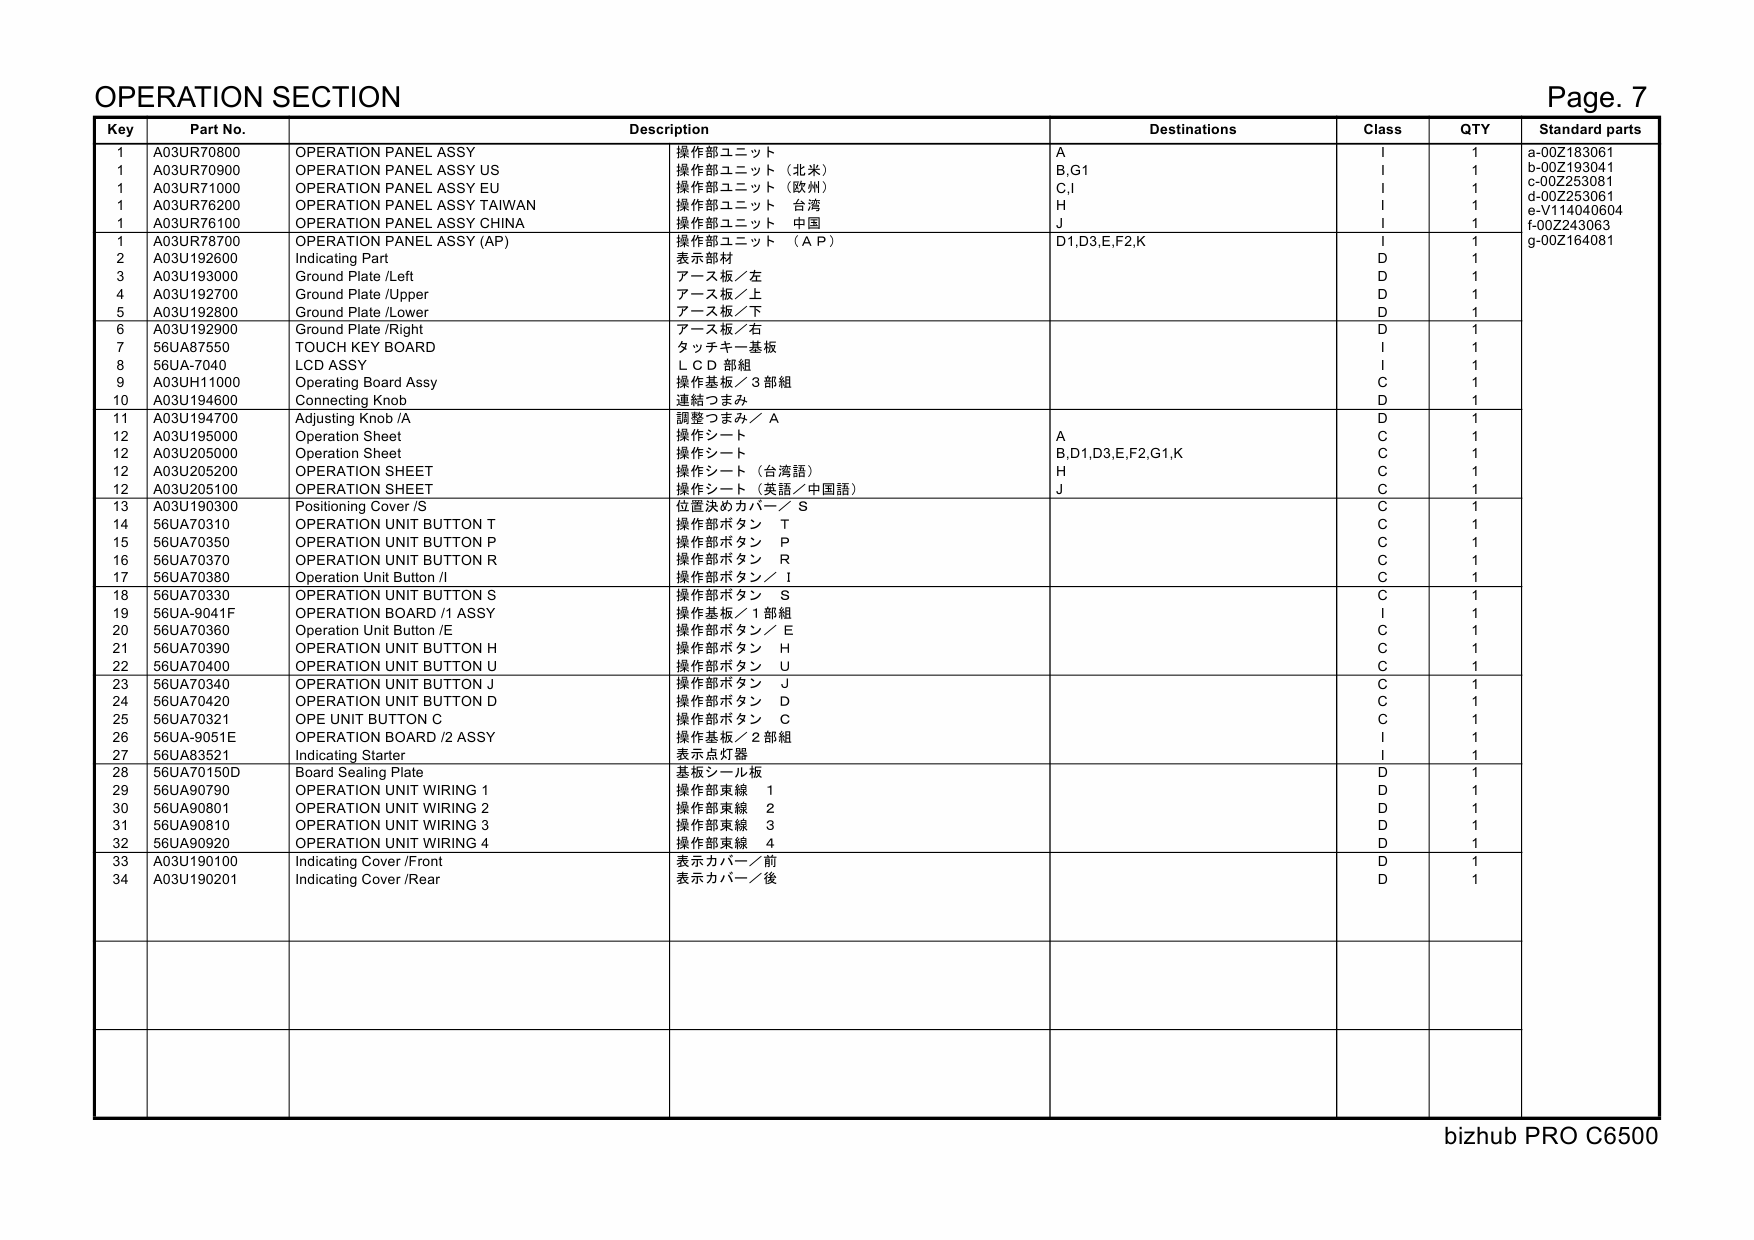 Konica-Minolta bizhub-PRO C6500 Parts Manual-6